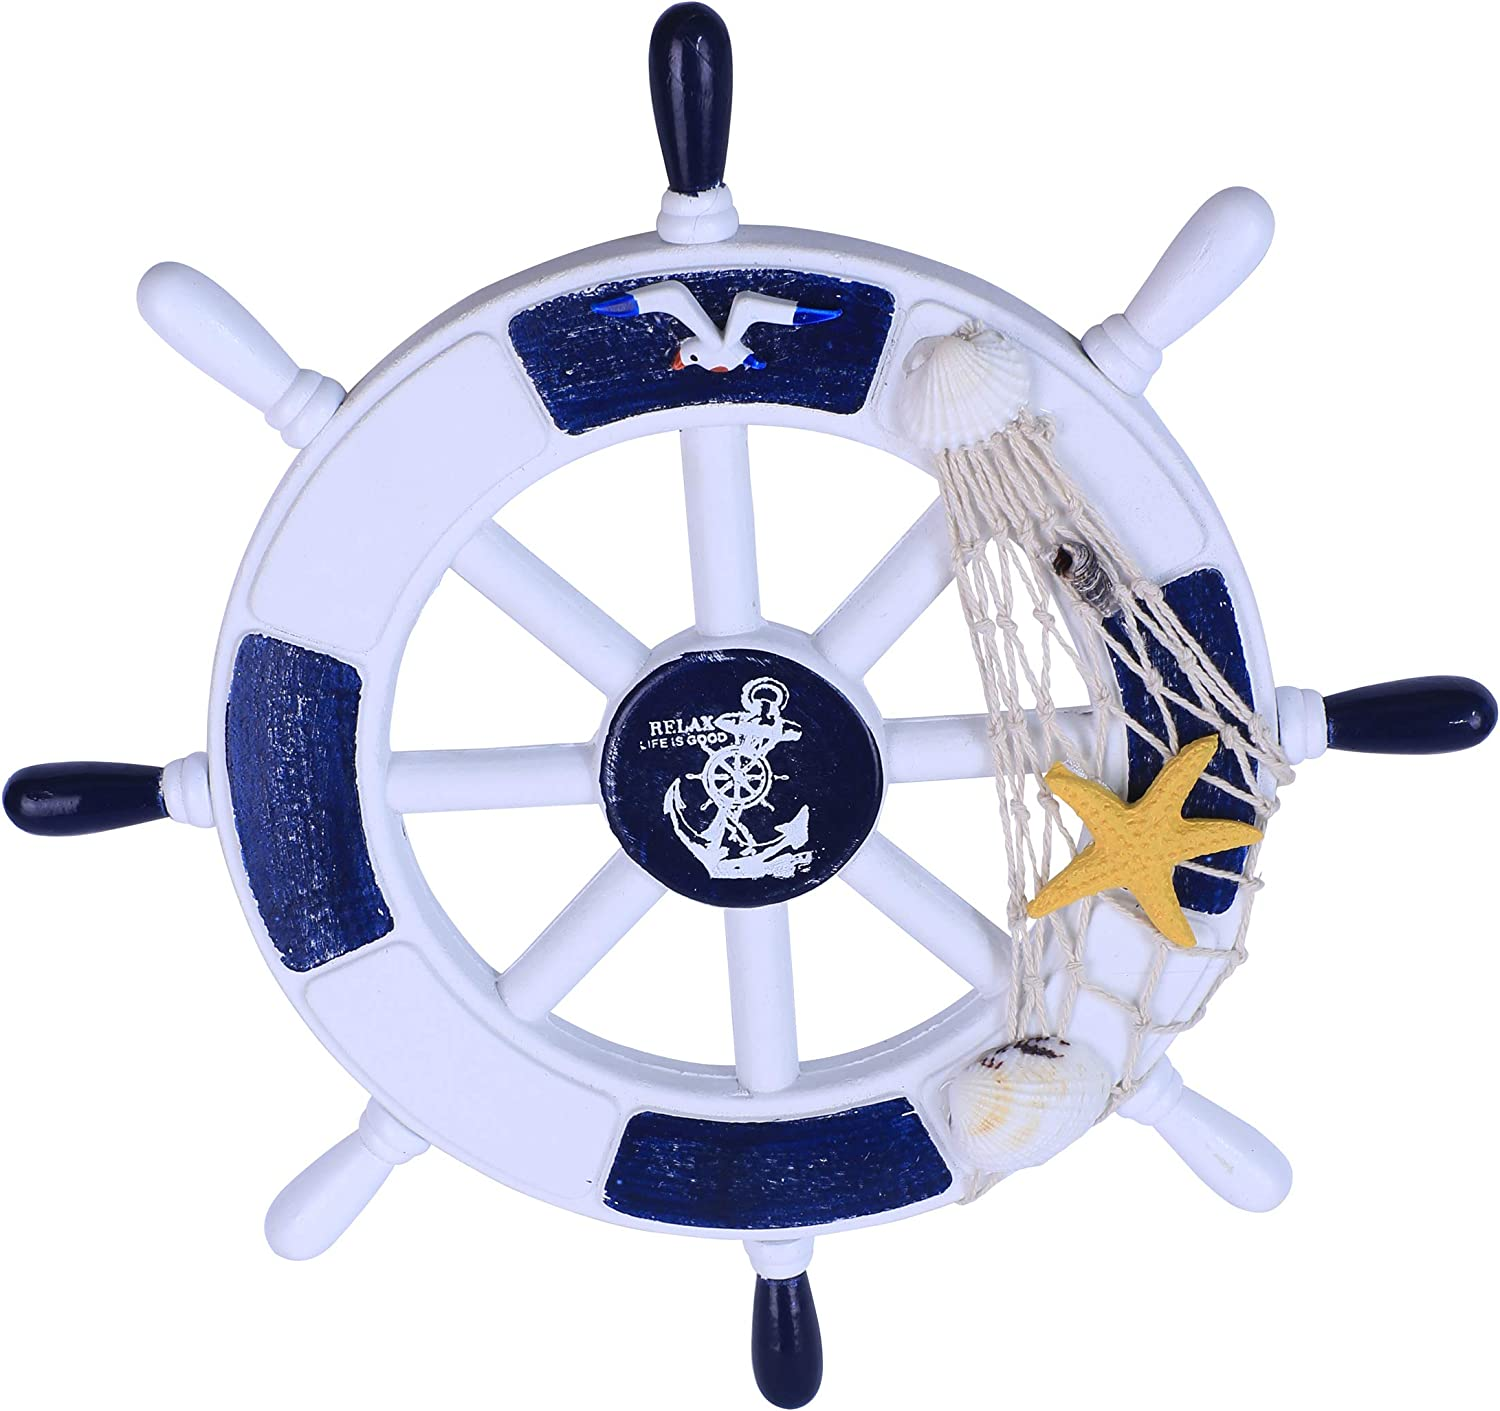 "Art Maison Beach Nautical Wooden Boat Ship Steering Wheel with Fishing Net Shell Bird, White and Dark Blue, 11"" Diameter"